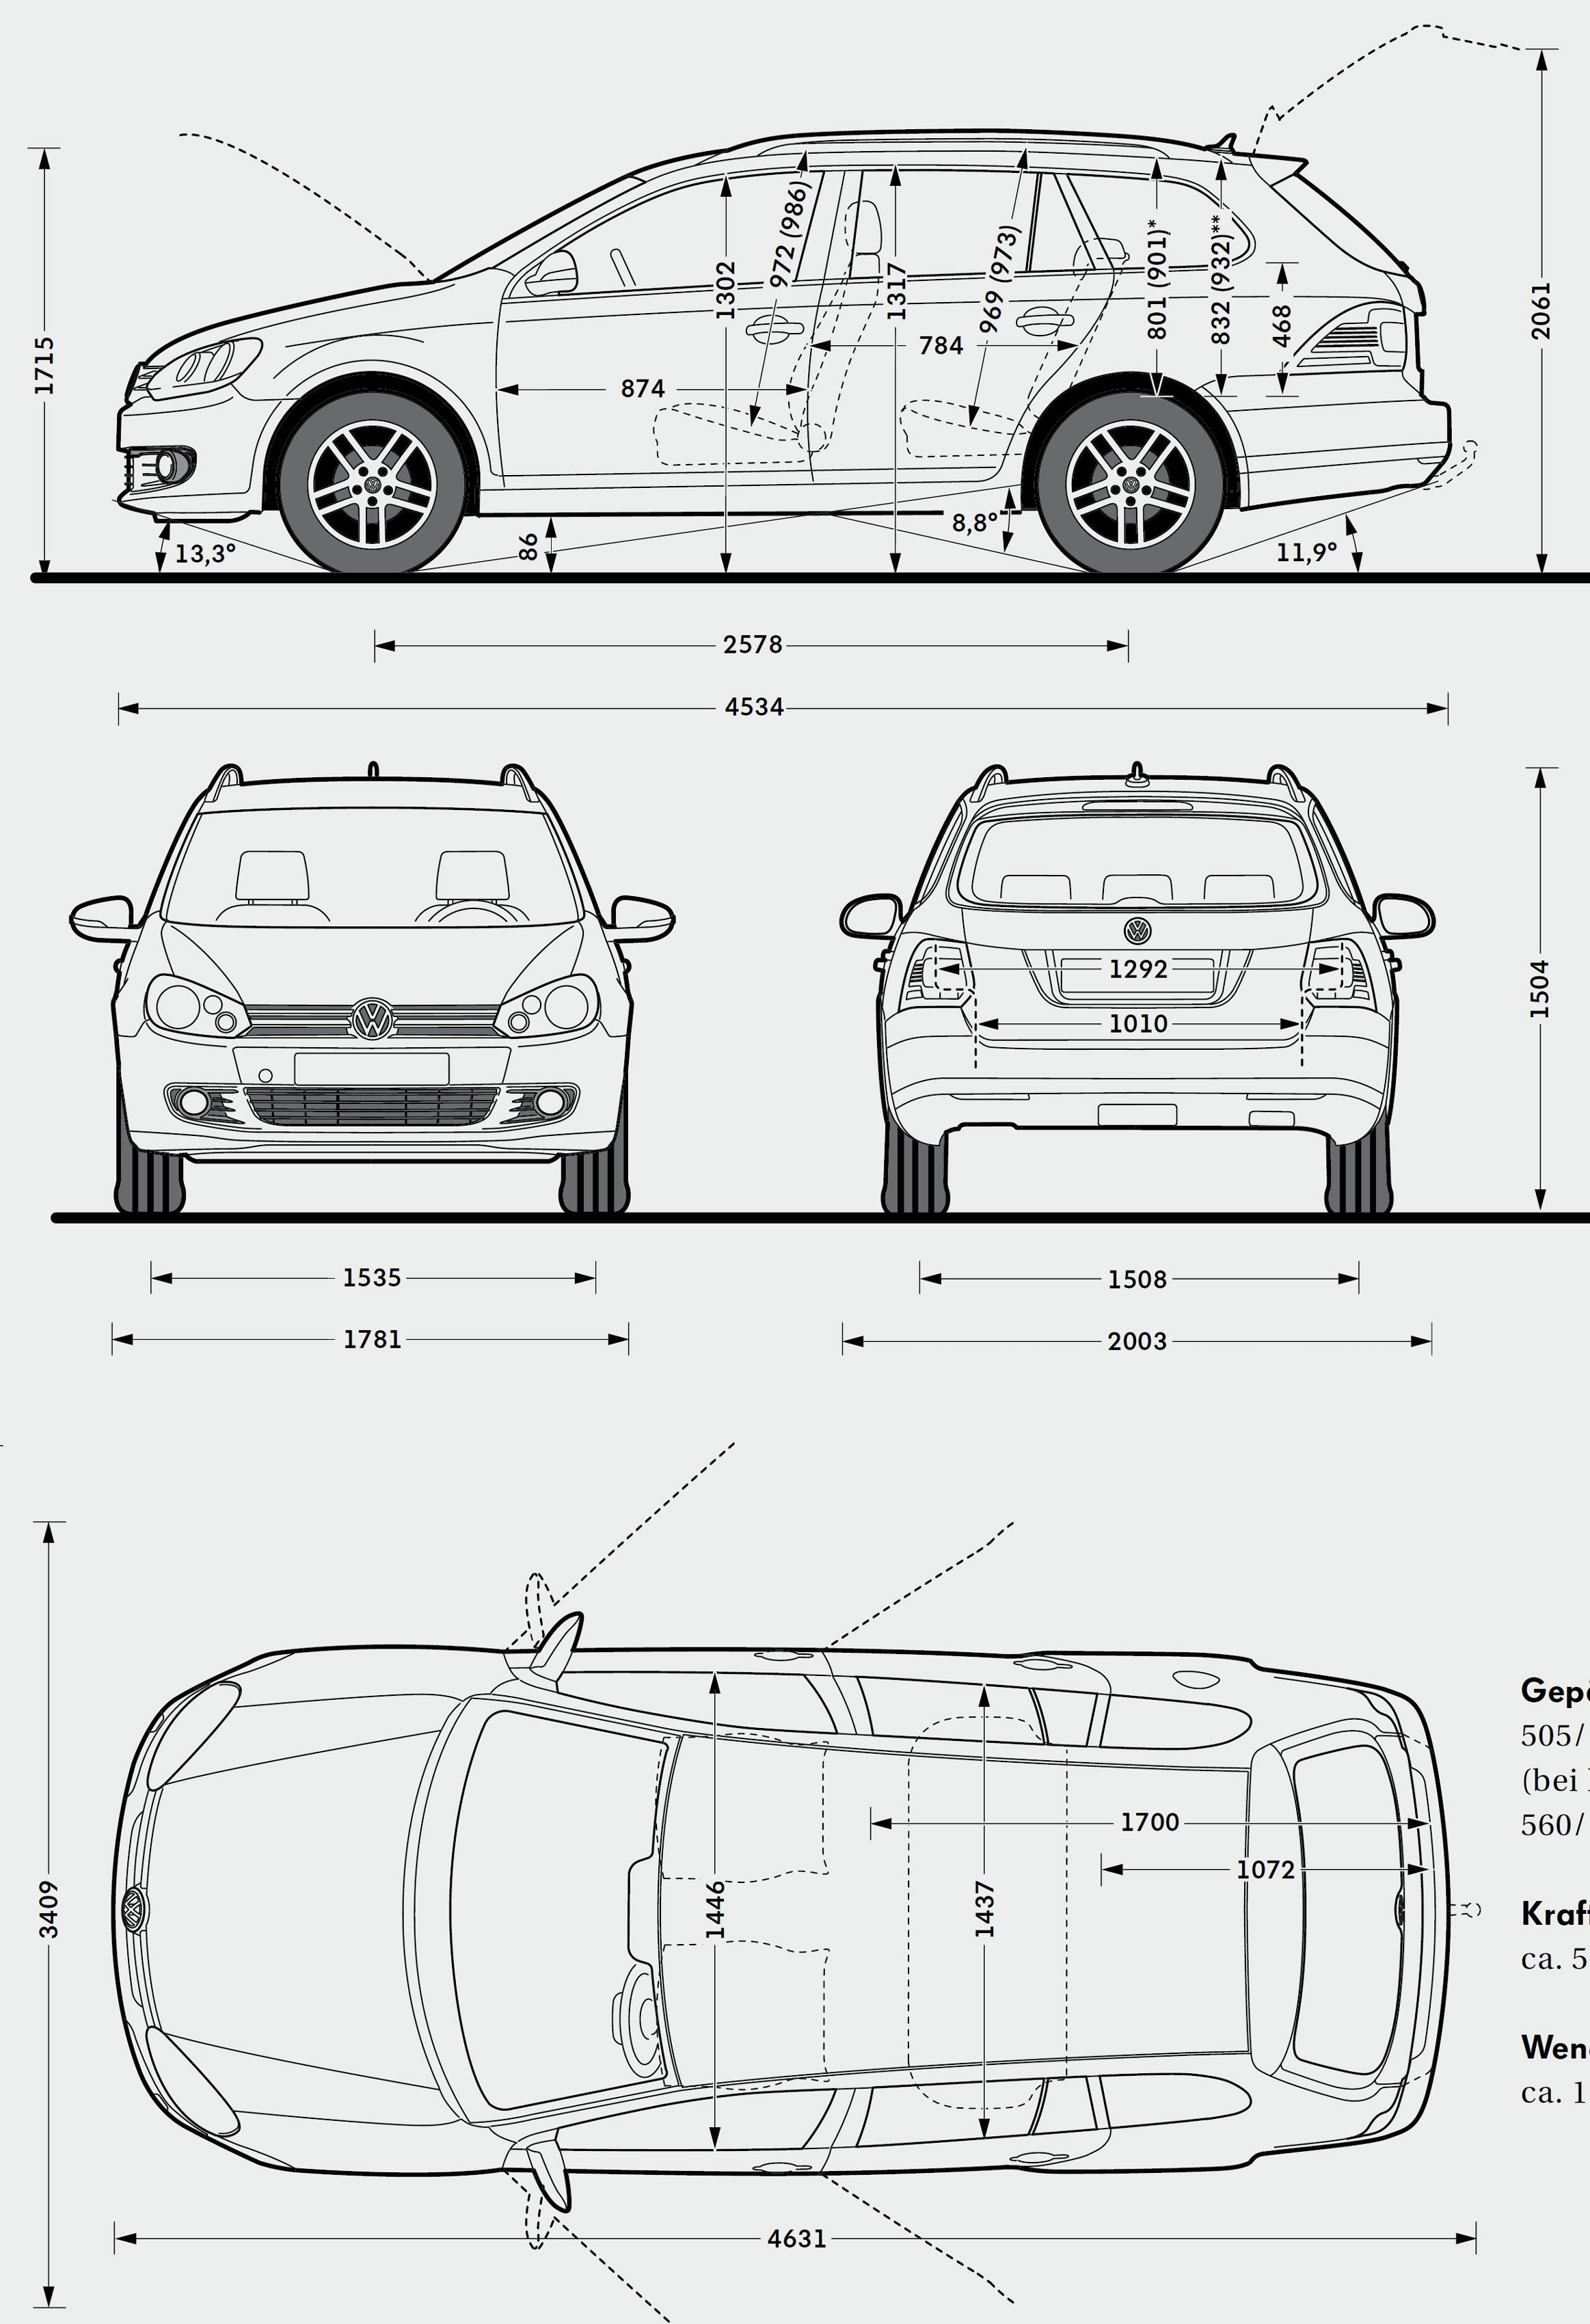 Volkswagen-Golf-Variant-28200929 | Model Sheet - Blue Print | Pinterest